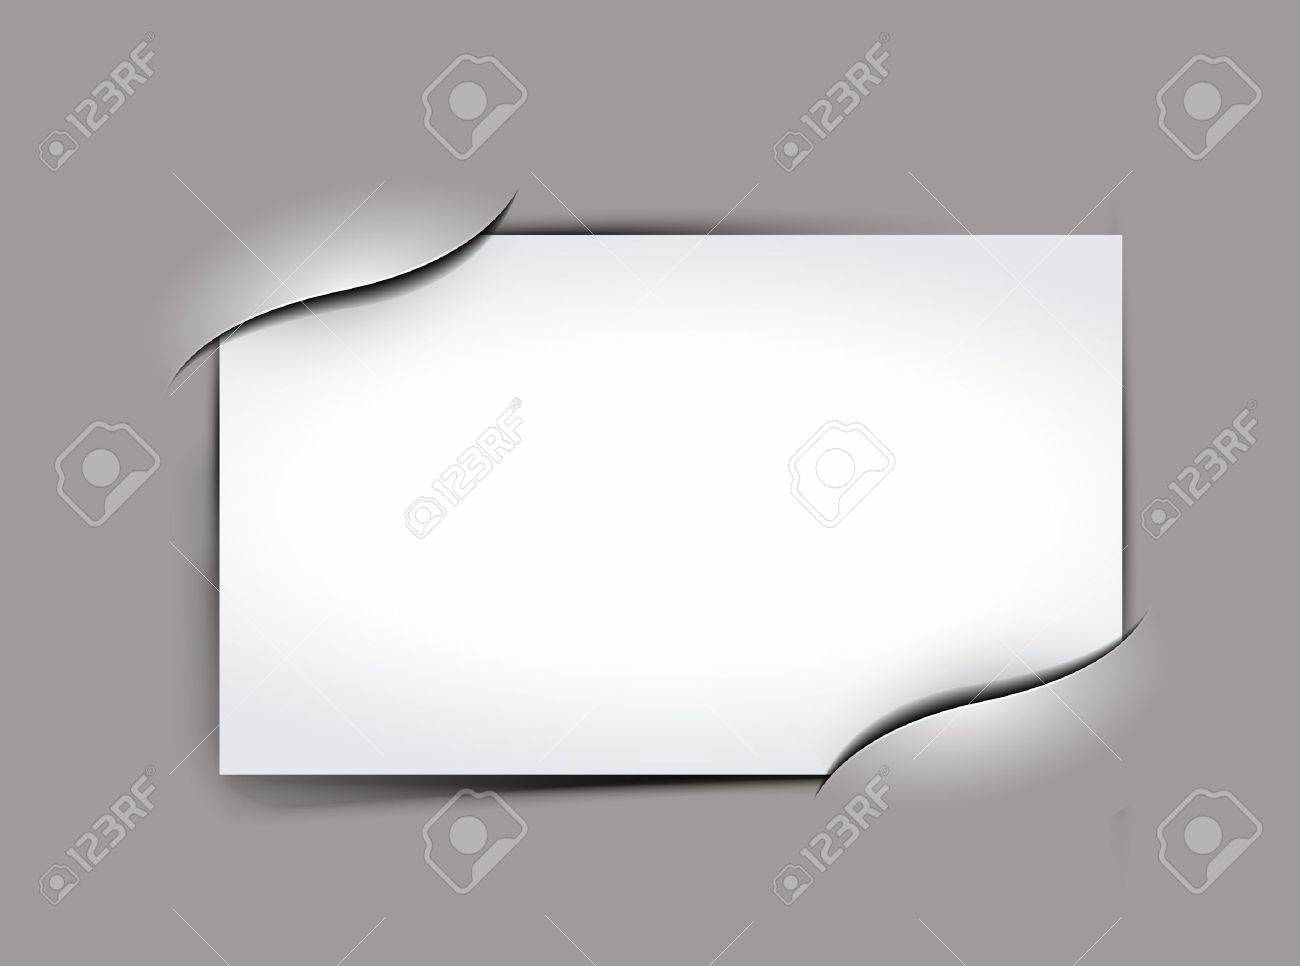 Composite empty photo frame with places for photo, background - 12491236